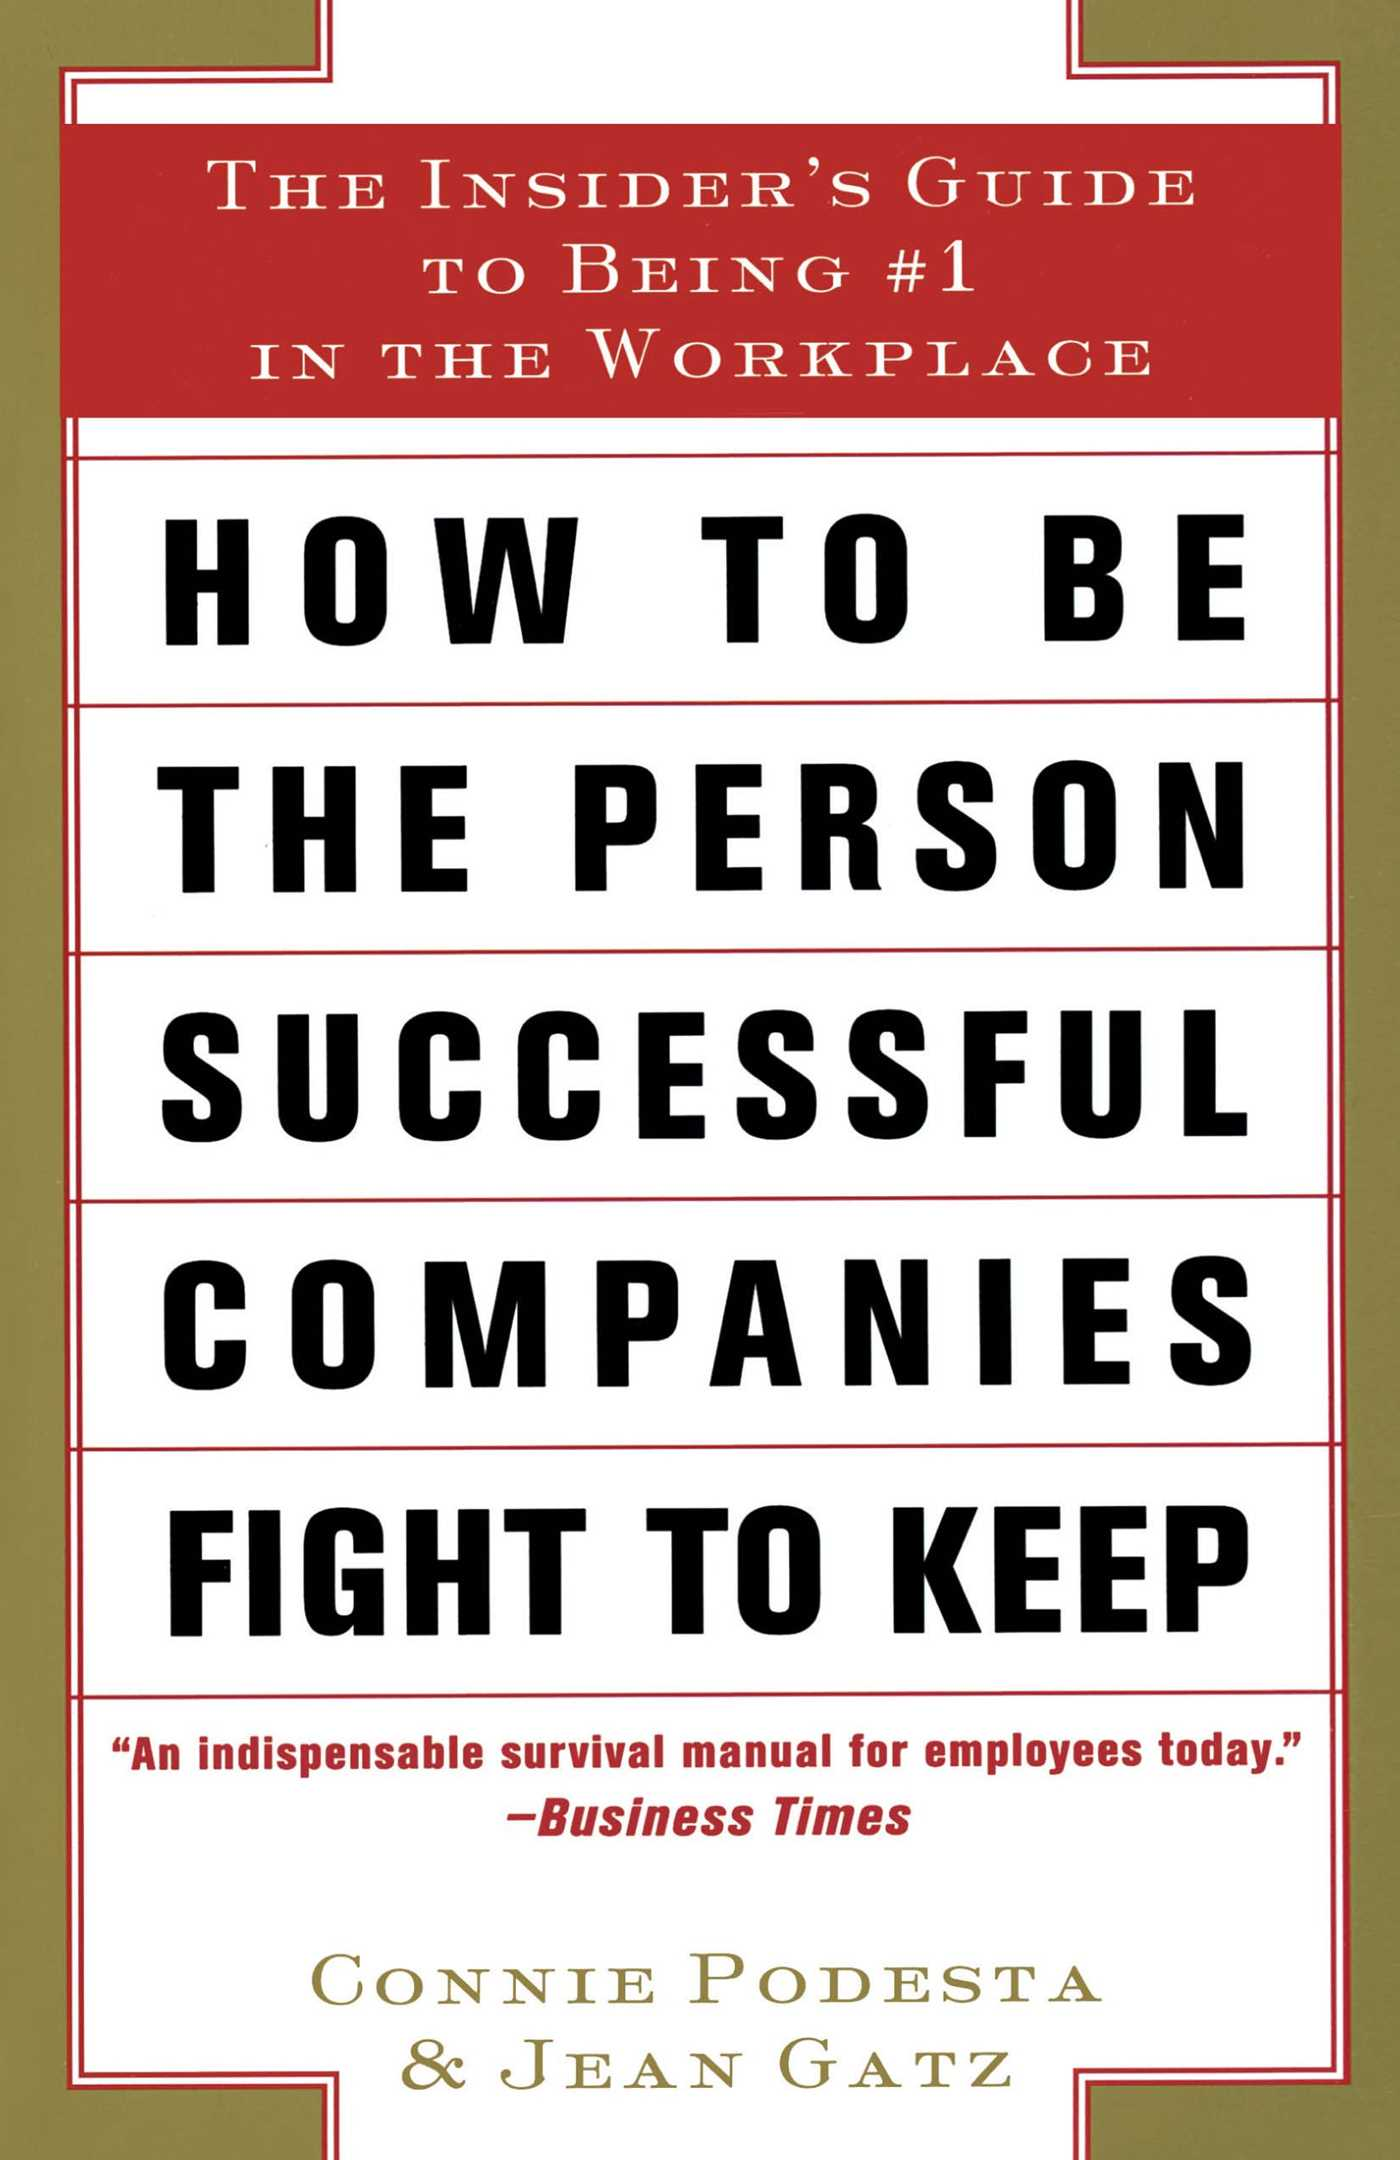 How to be the person successful companies fight 9780684840086 hr